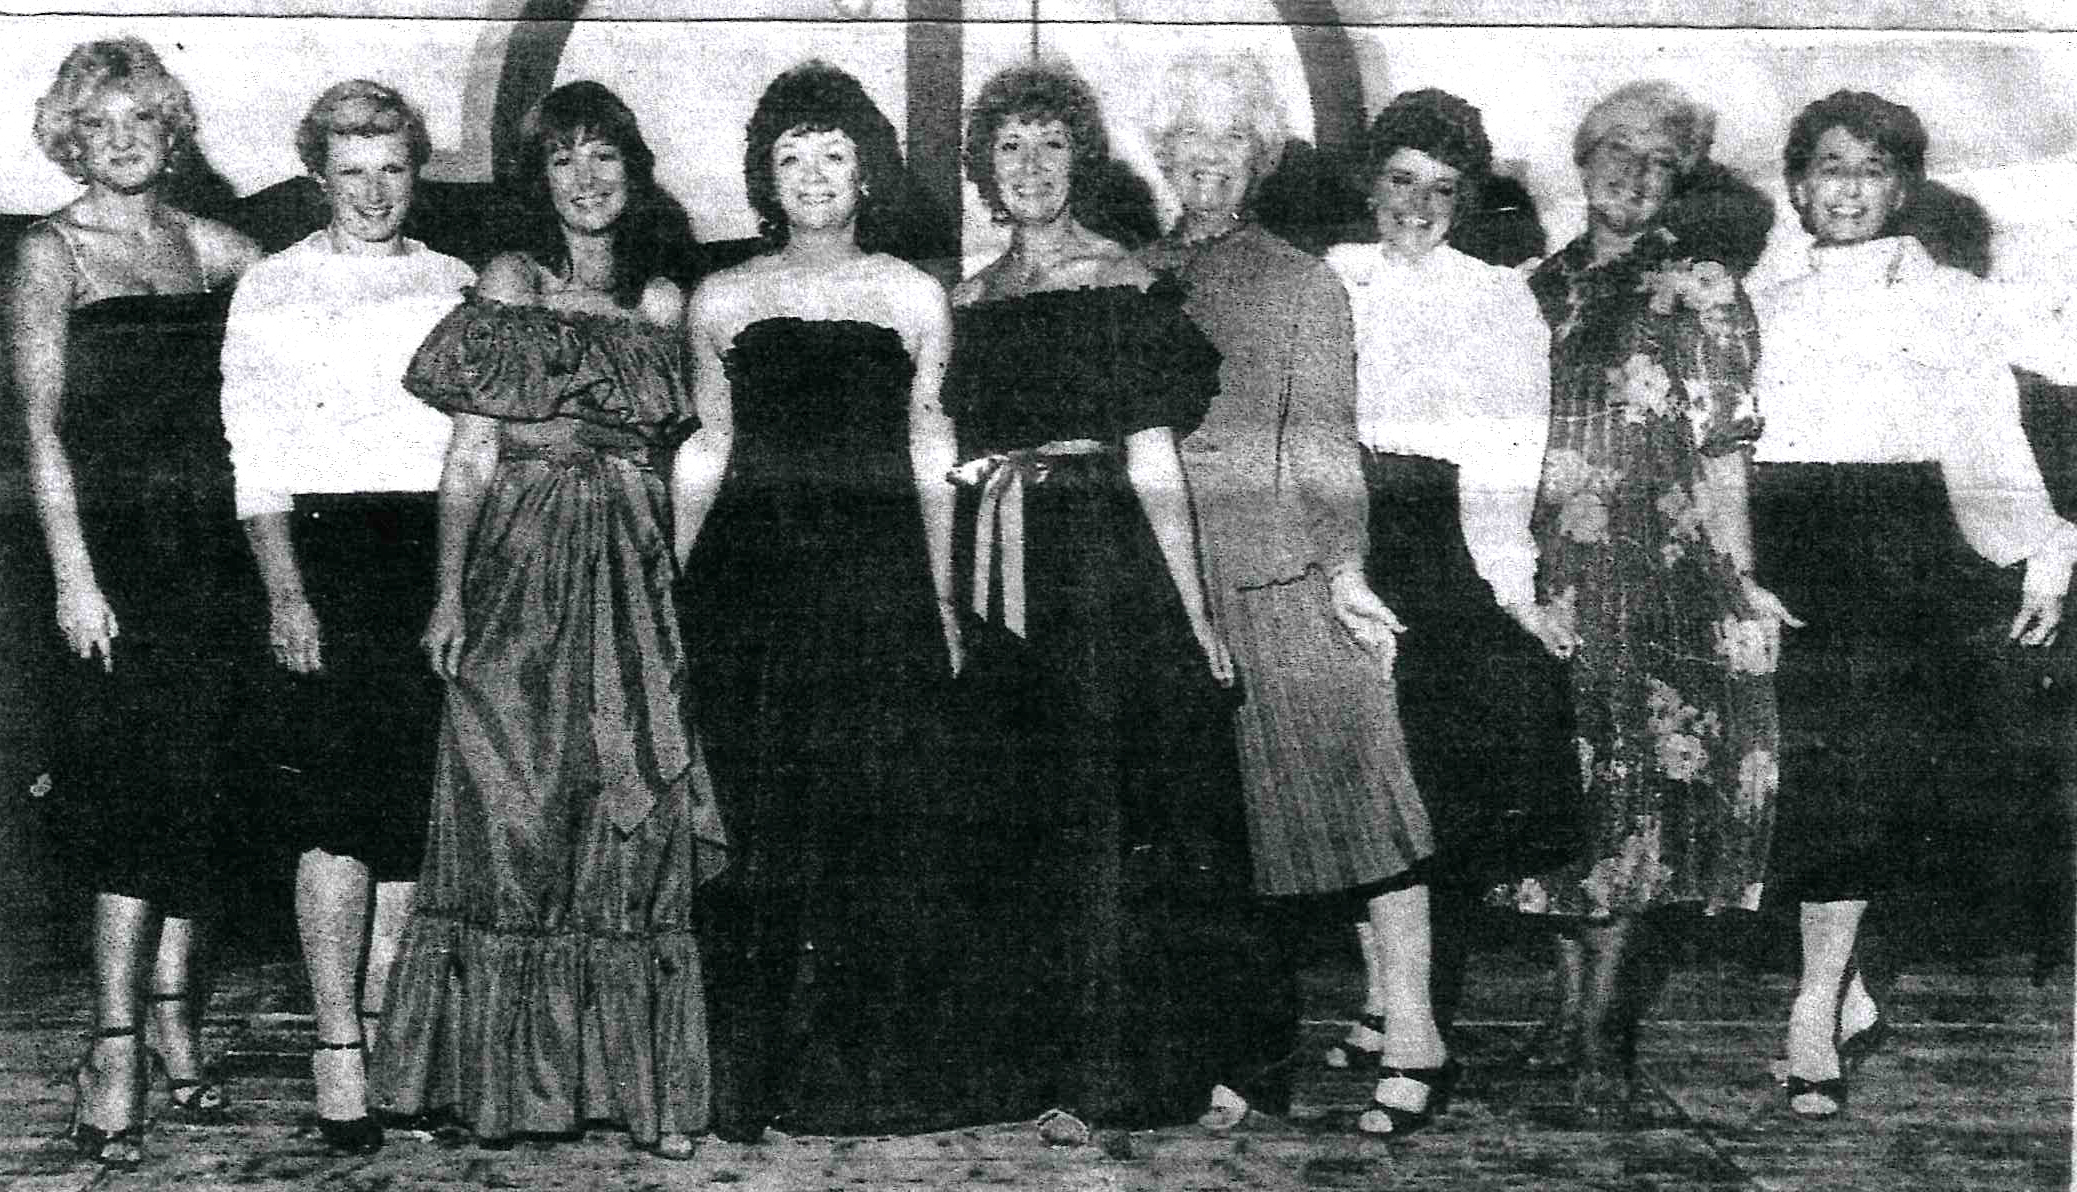 1984 - Models from Welshpool shop Emalies, who presented a fashion show at Castle Caereinion WI. Vicky Waldron, Judith Greatorex, Janette and Joyce Mason, Pam Edwards, Jenny Jenkins, Joan Davies, Gwneth Thornton, Betty Ford and Joyce Evans